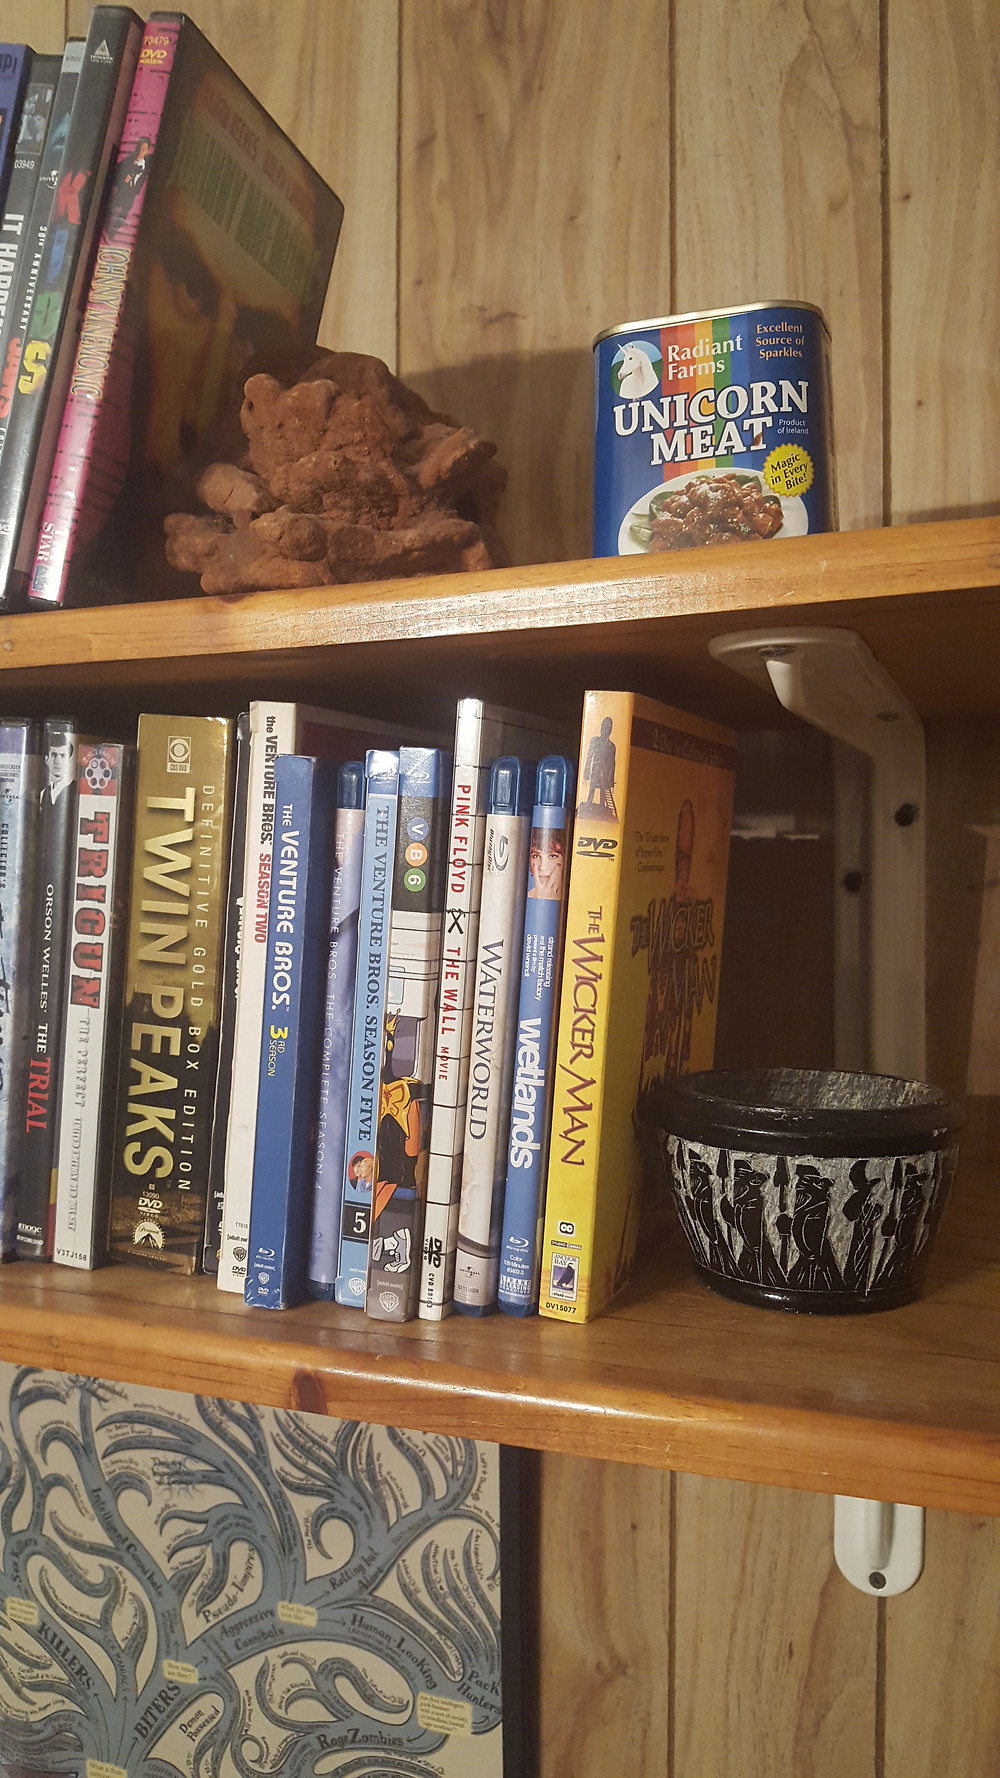 cool brown rock and sentimental mortar are bookends on the other side of this DVD shelf